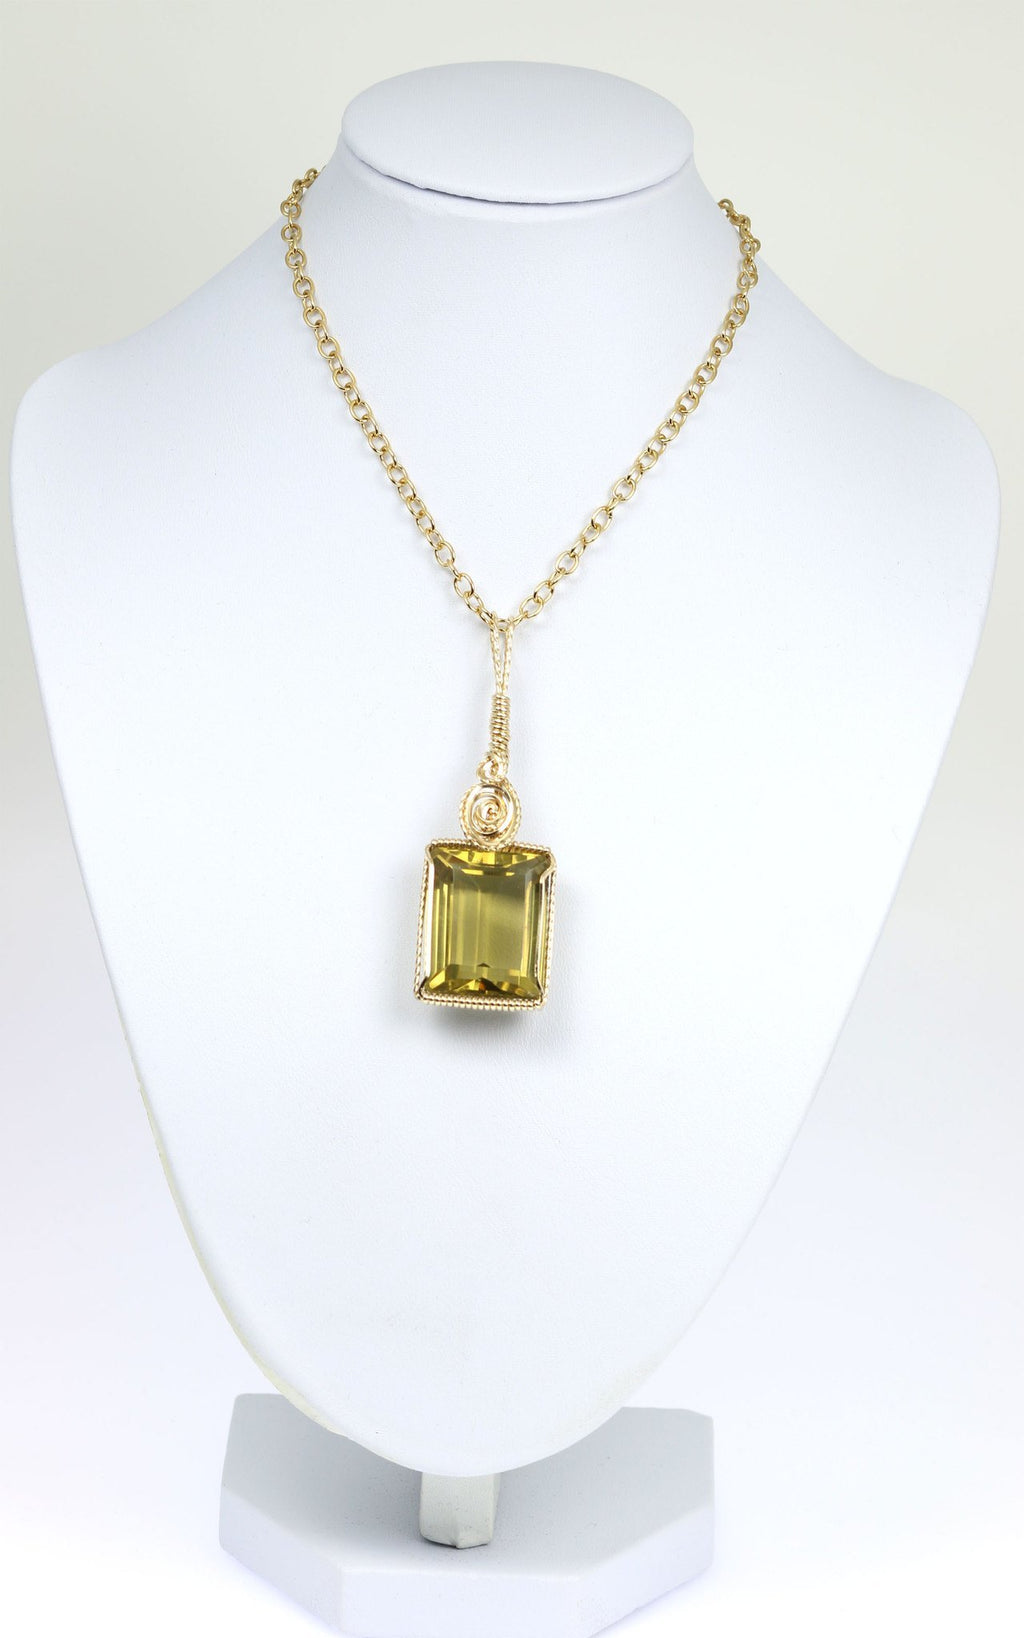 51 CT Emerald Cut Green Gold Quartz 14K Gold-filled Pendant - johnsbrana - 3